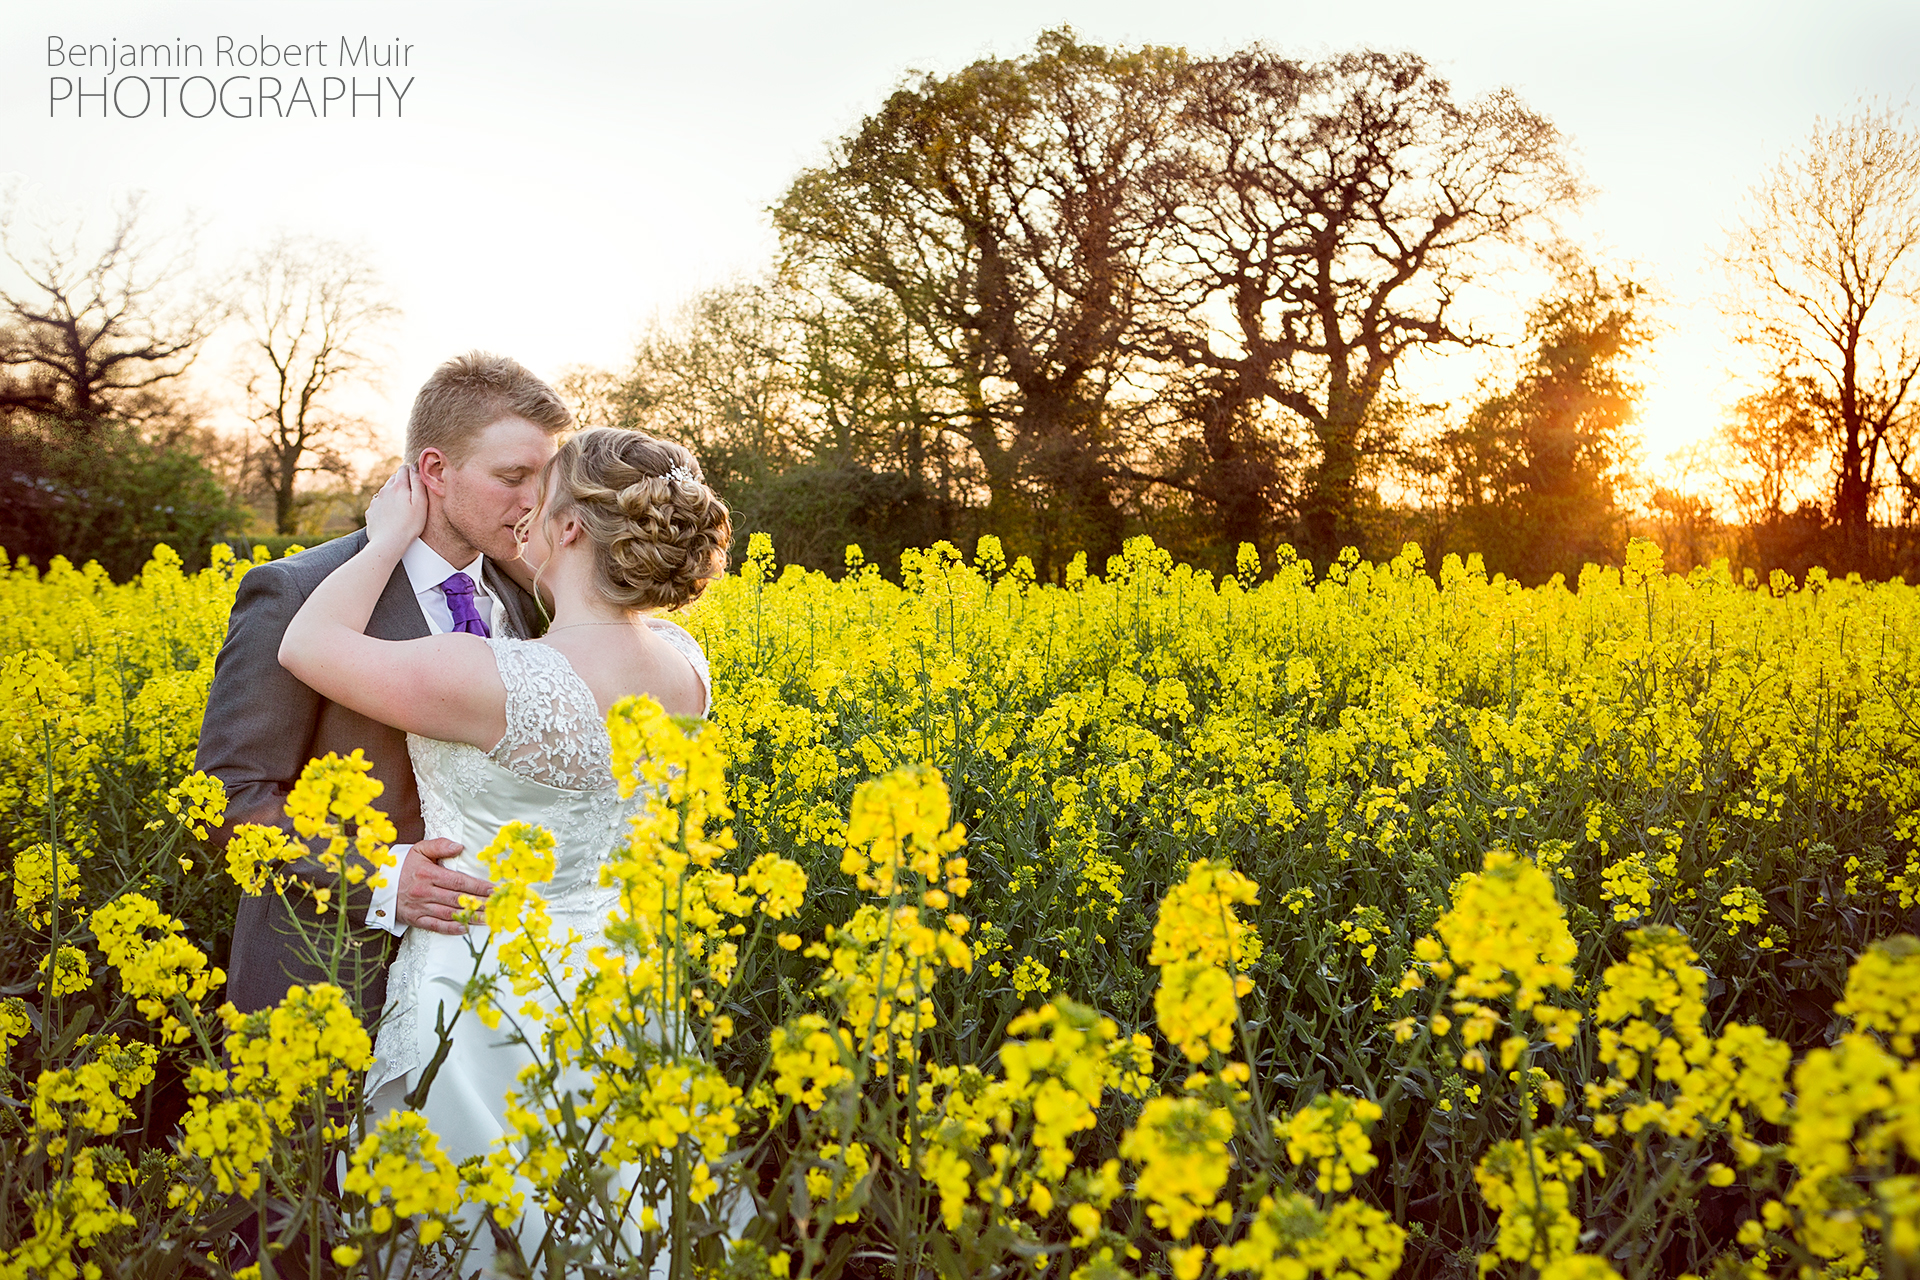 The sunset Kiss. Couple photos. Beautiful wedding photography photographers in Exmouth, Bristol, South West. English photographer in Barcelona, Spain